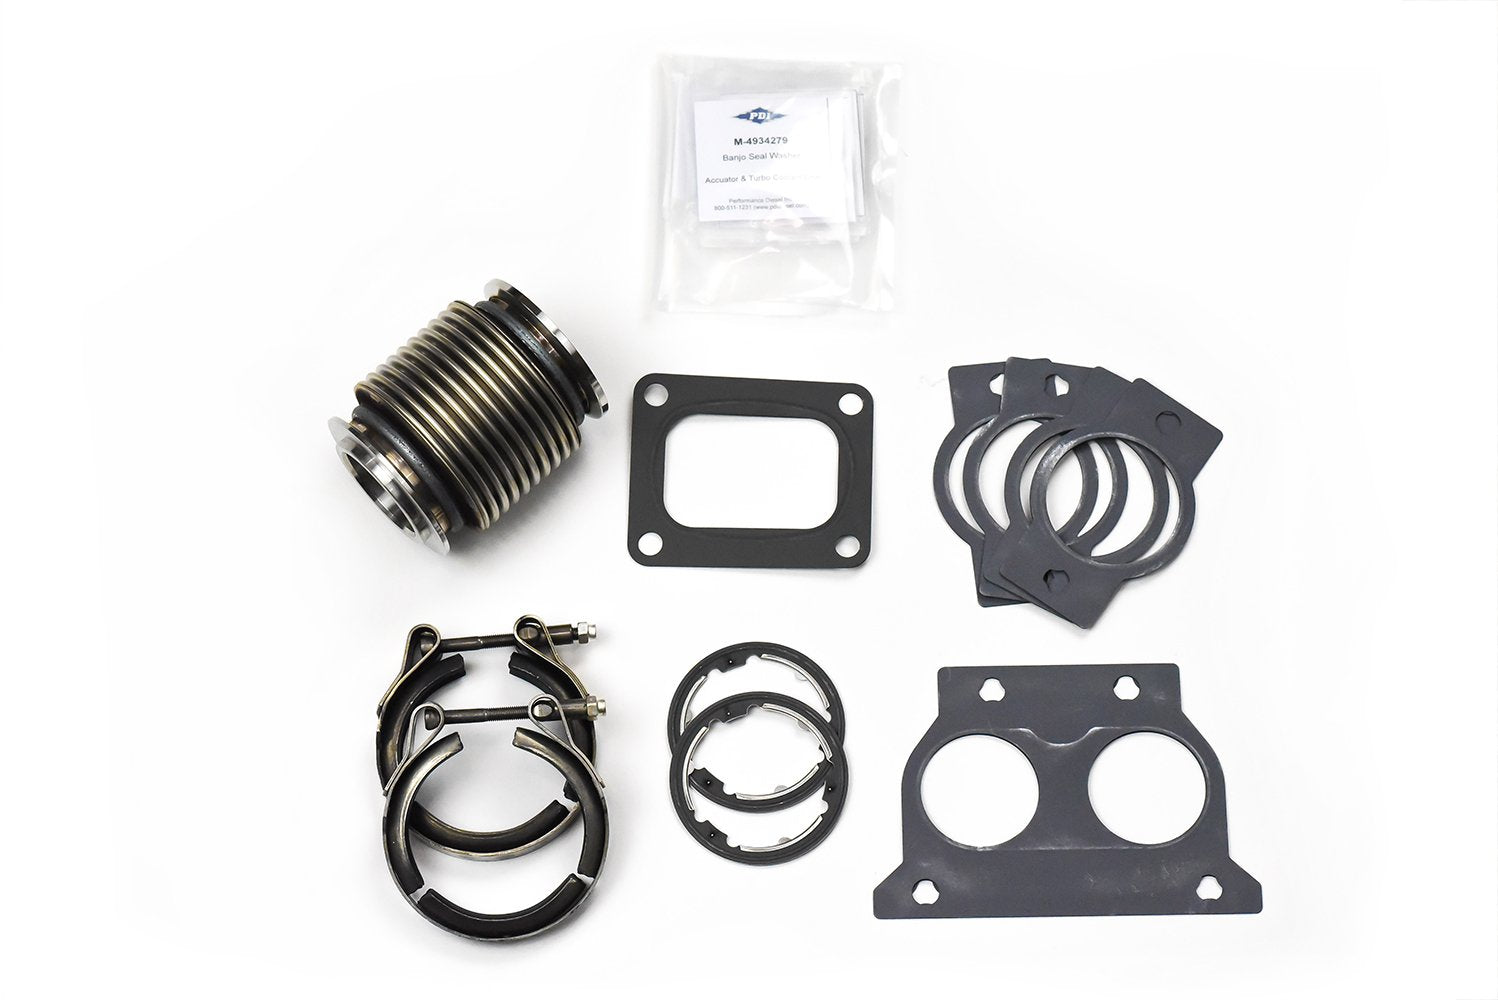 Cummins ISX and X15 Manifold Install Kit